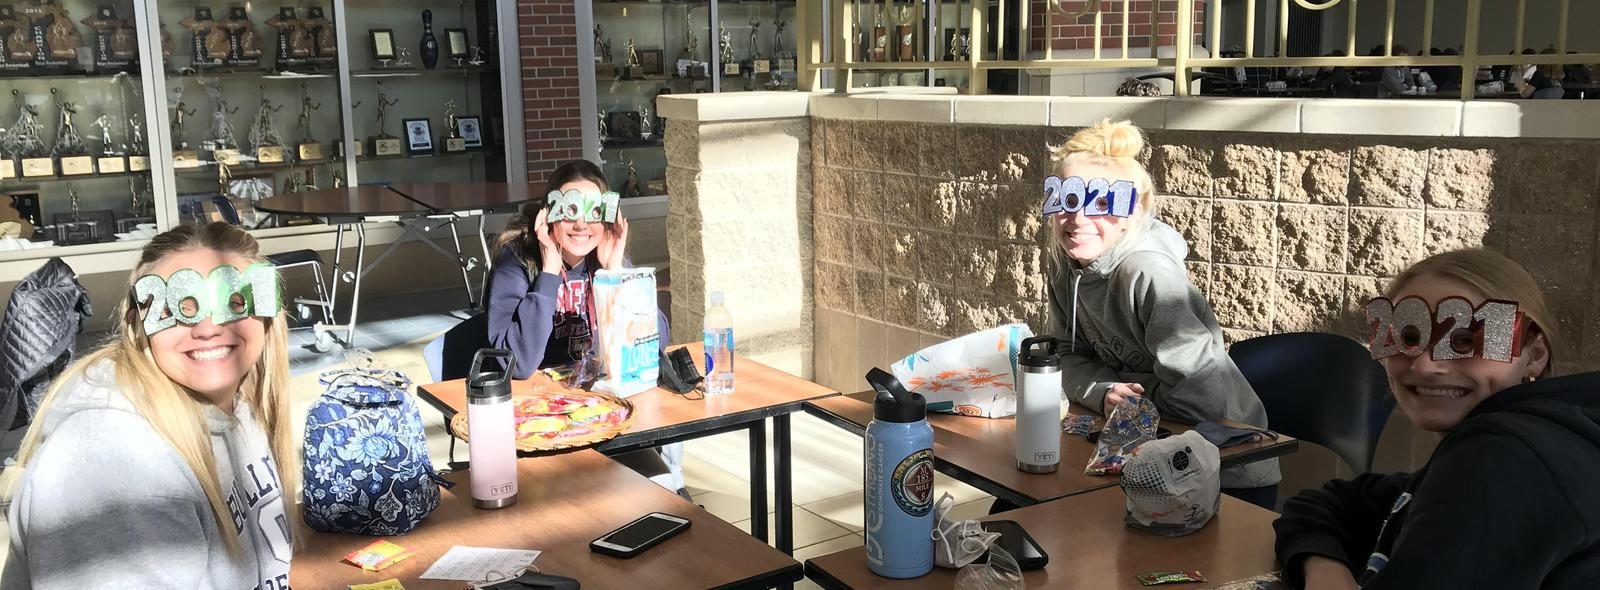 seniors at lunch with 2021 silly glasses on